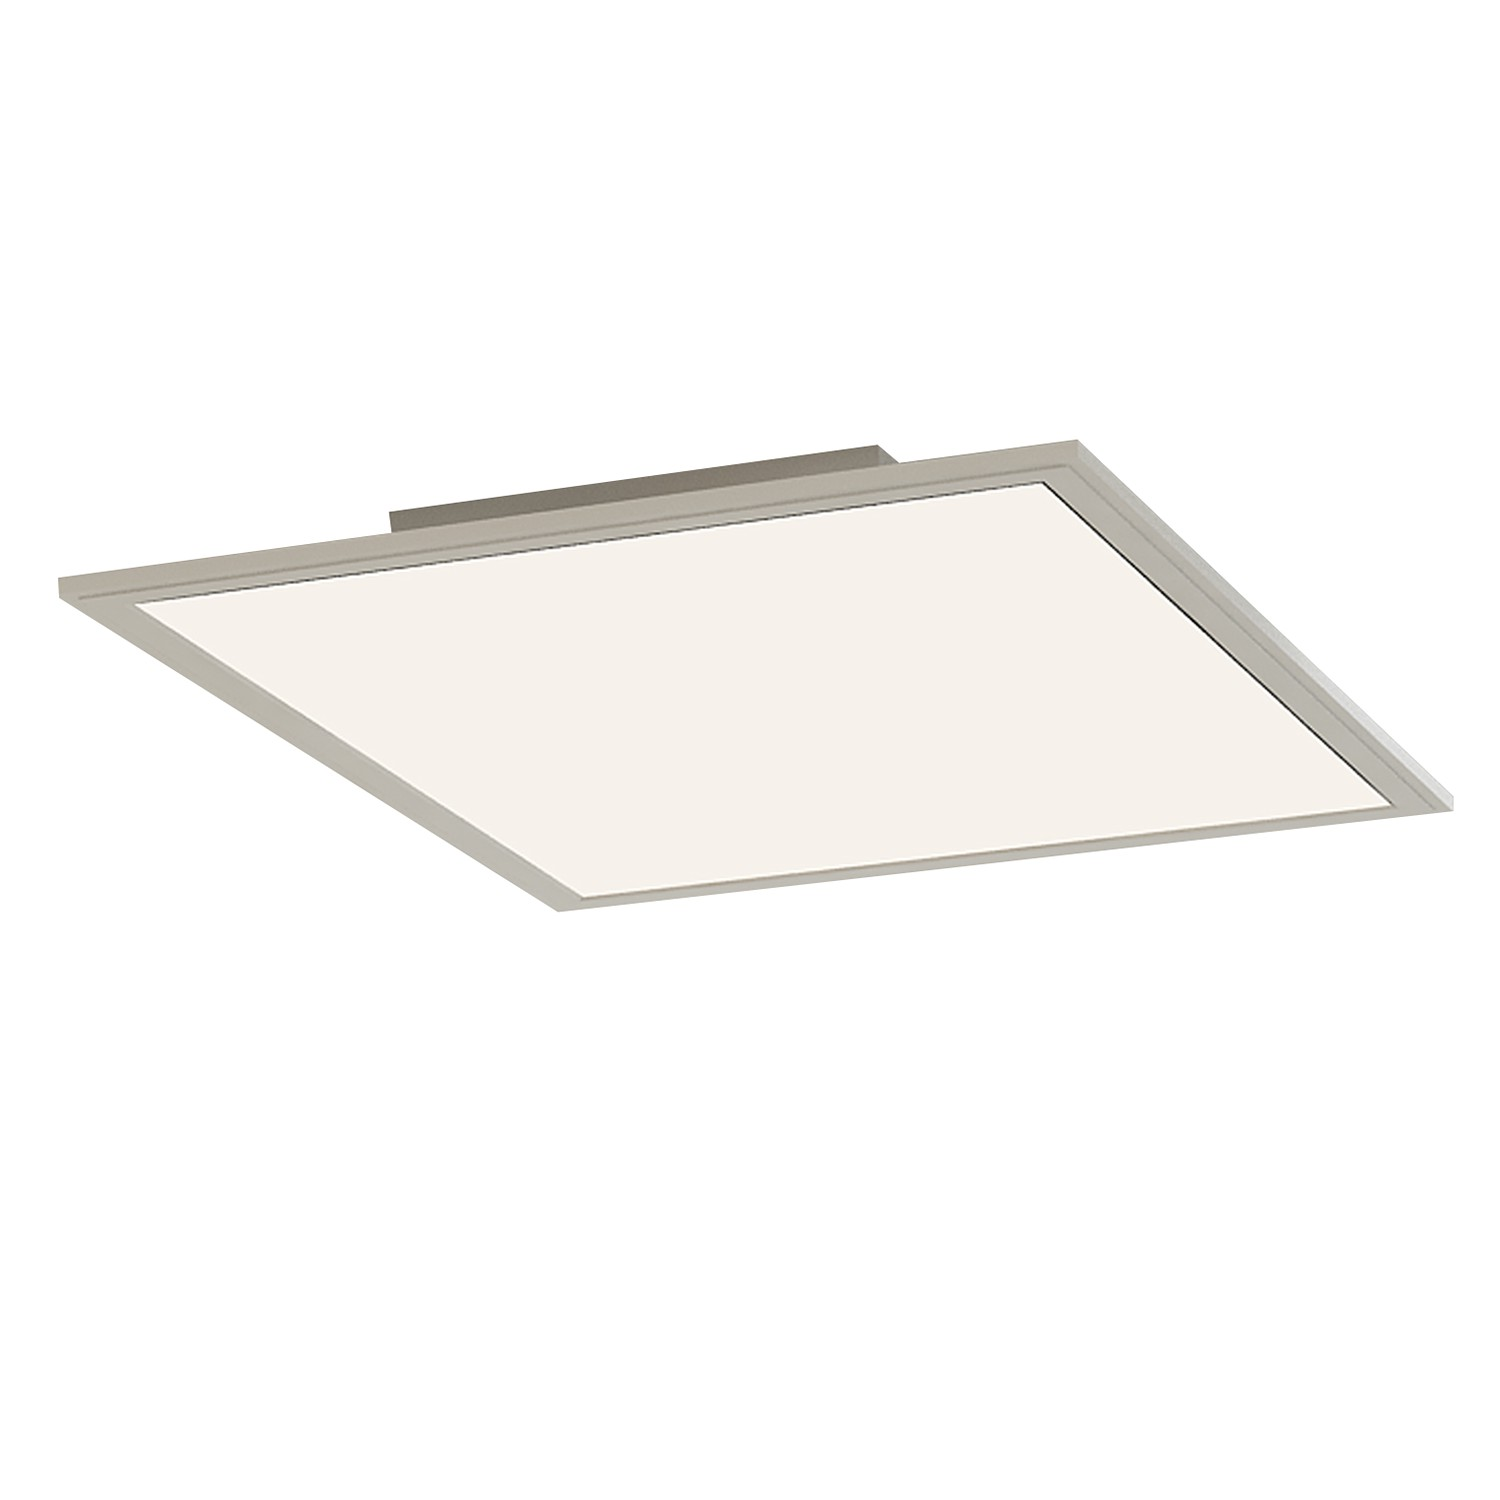 home24 LED-Deckenleuchte Selina